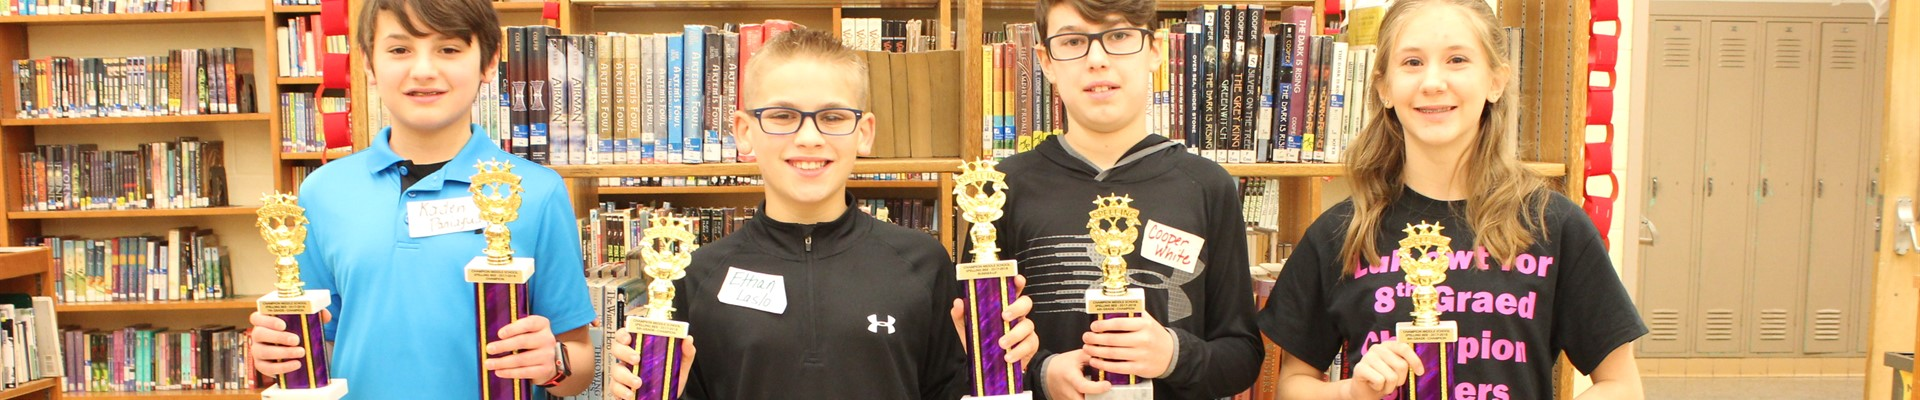 CMS Spelling Bee Winners hold trophies in library